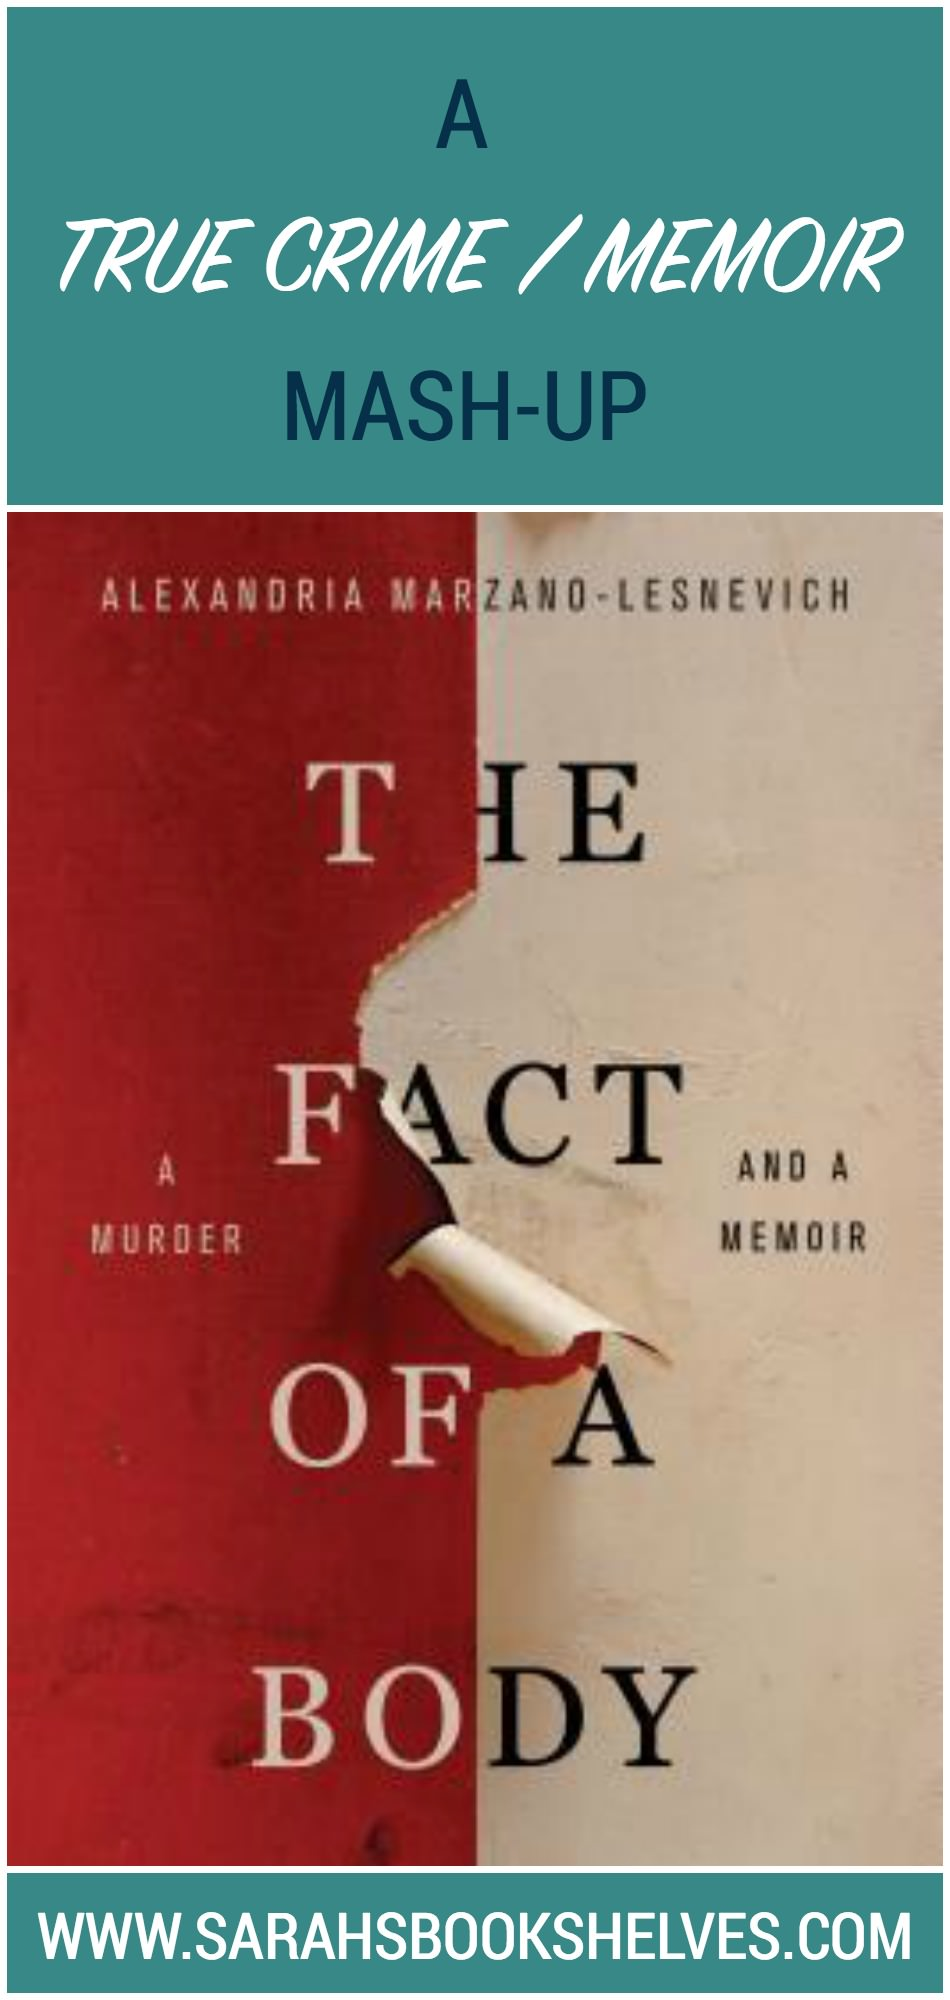 The Fact of a Body by Alexandria Marzano-Lesnevich is a thoroughly unique, complex, and emotionally gut-wrenching mash-up of true crime story and dysfunctional childhood memoir.